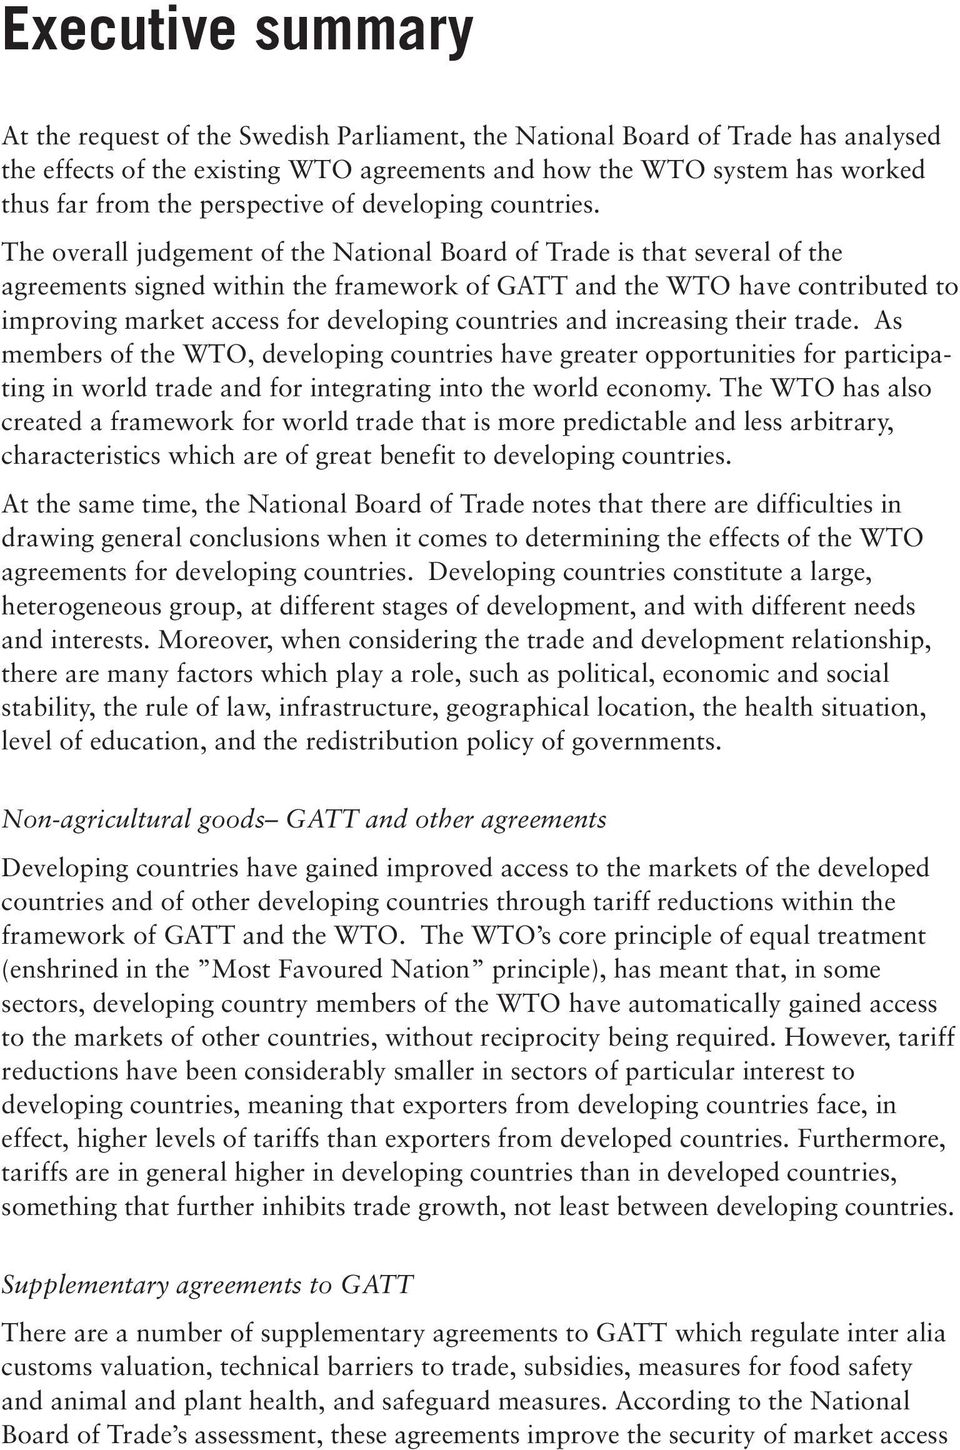 The overall judgement of the National Board of Trade is that several of the agreements signed within the framework of GATT and the WTO have contributed to improving market access for developing